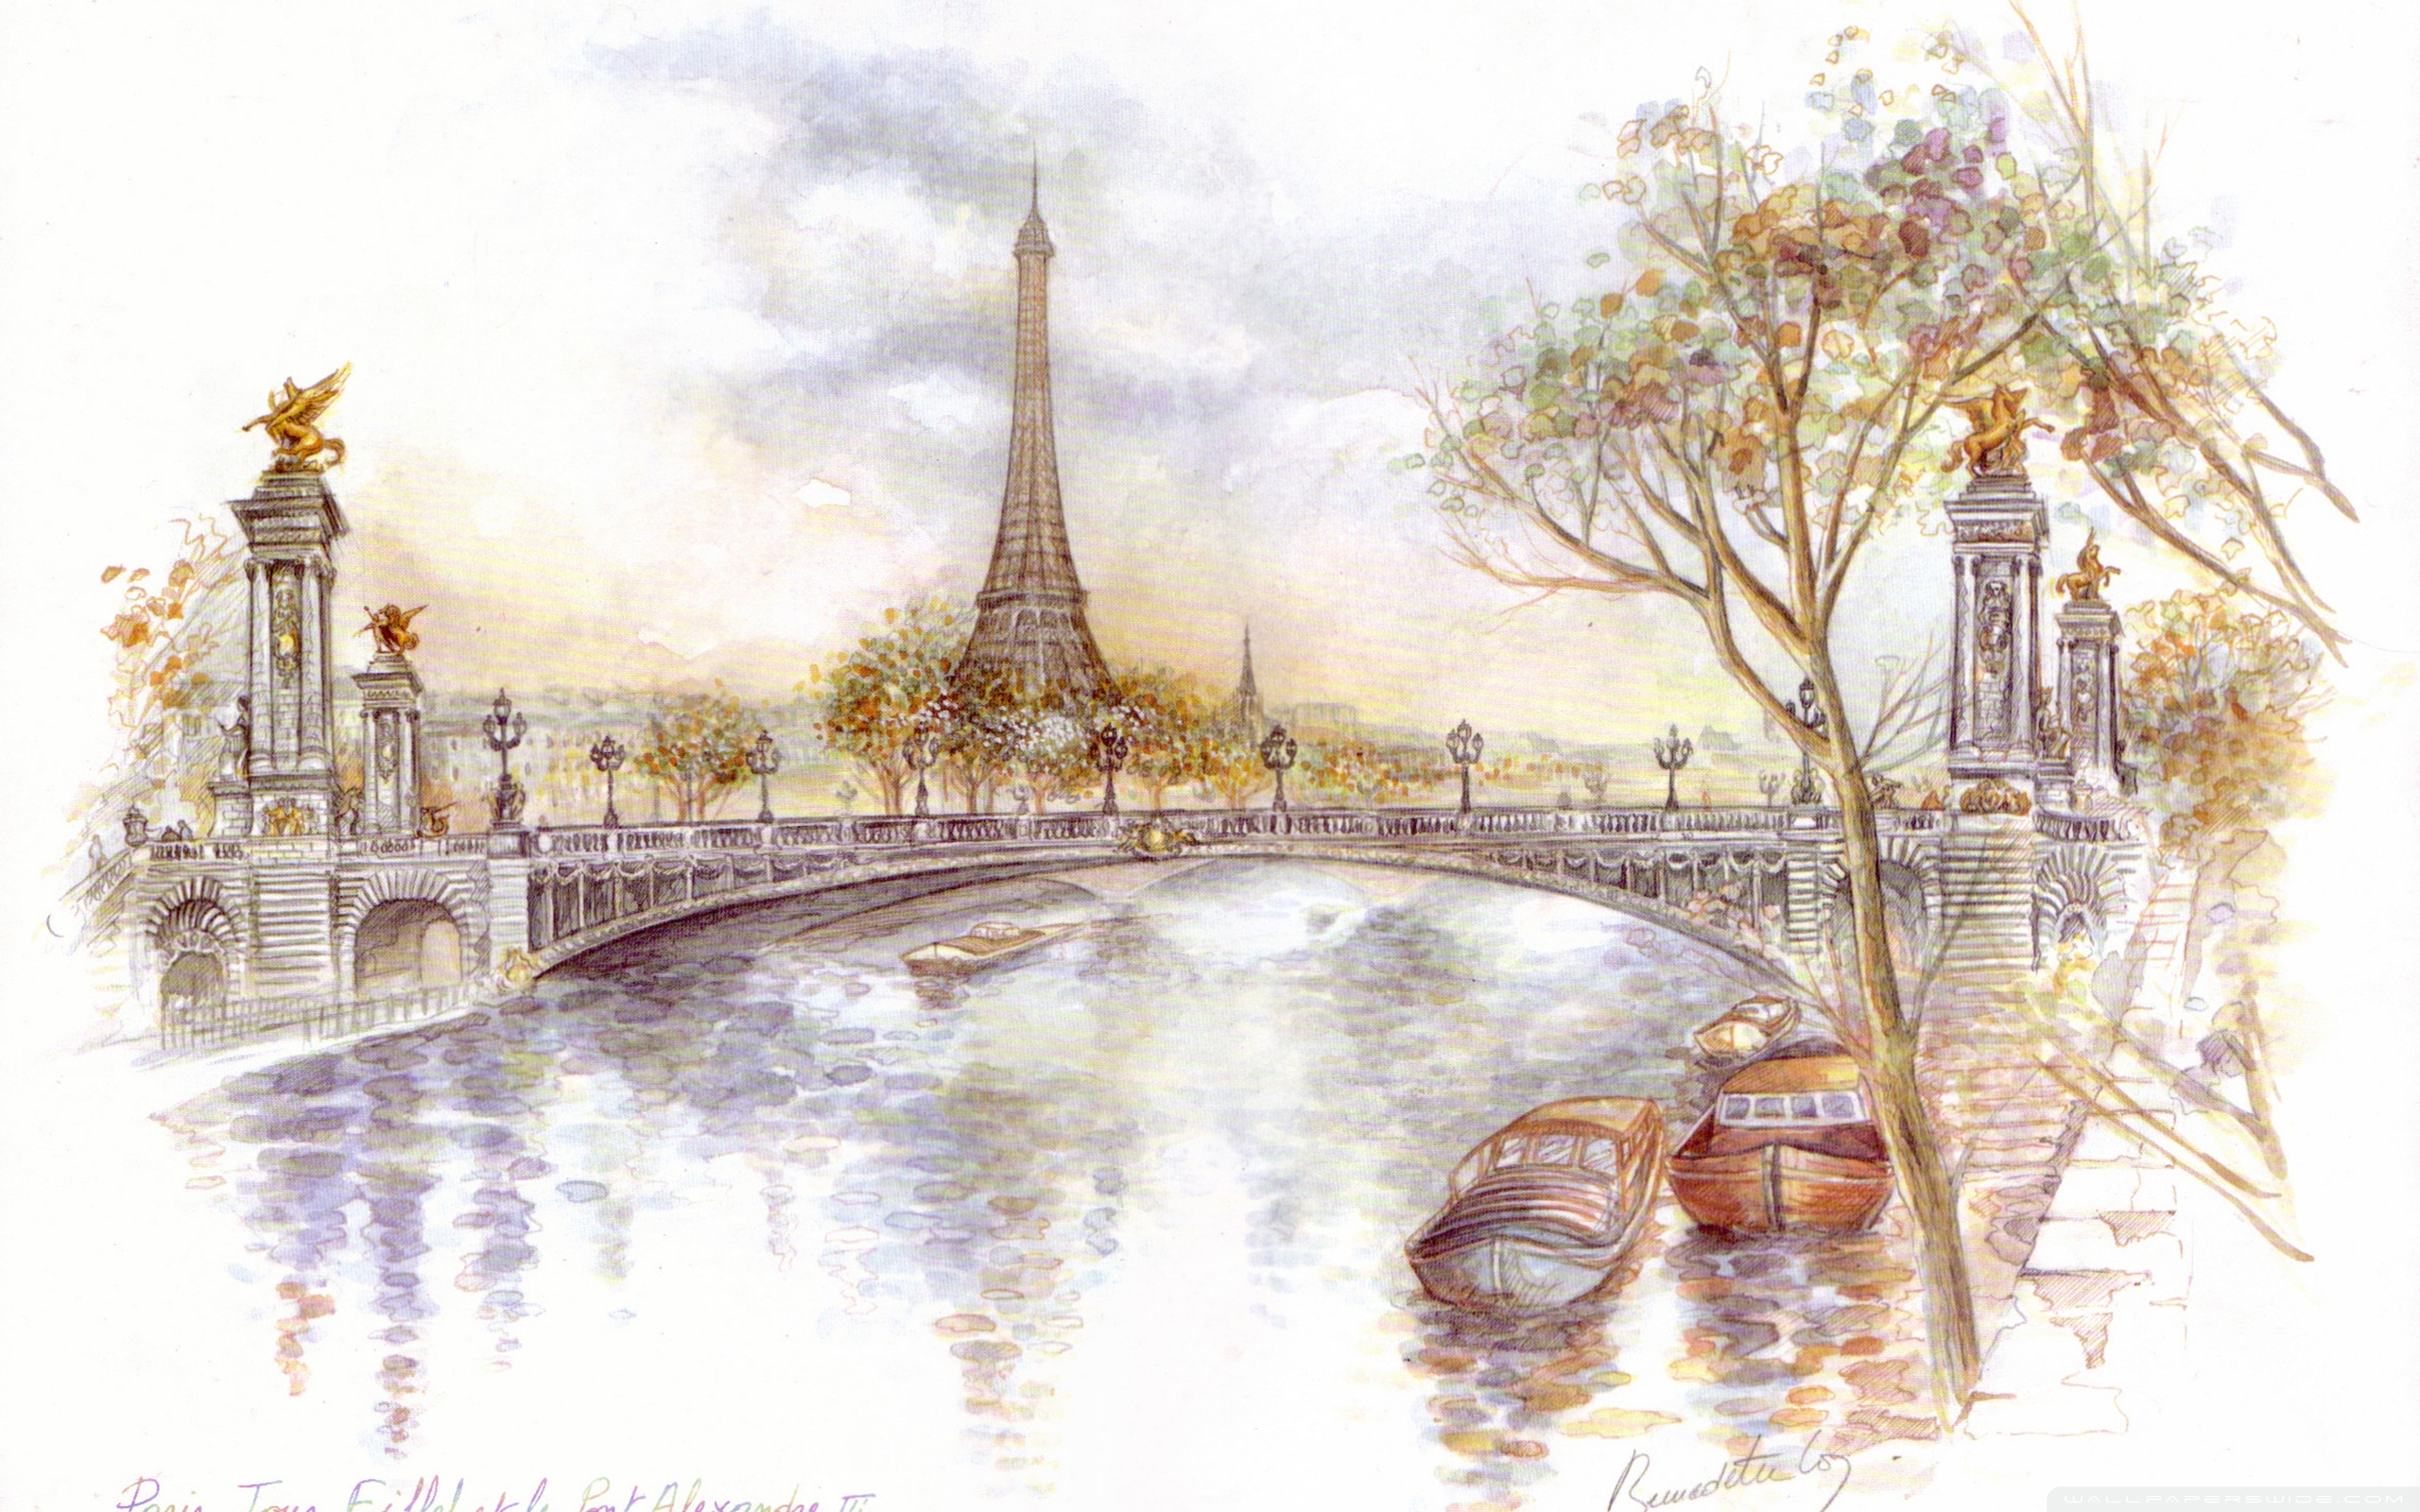 2560x1600 Paris Drawing 4k Hd Desktop Wallpaper For 4k Ultra Hd Tv